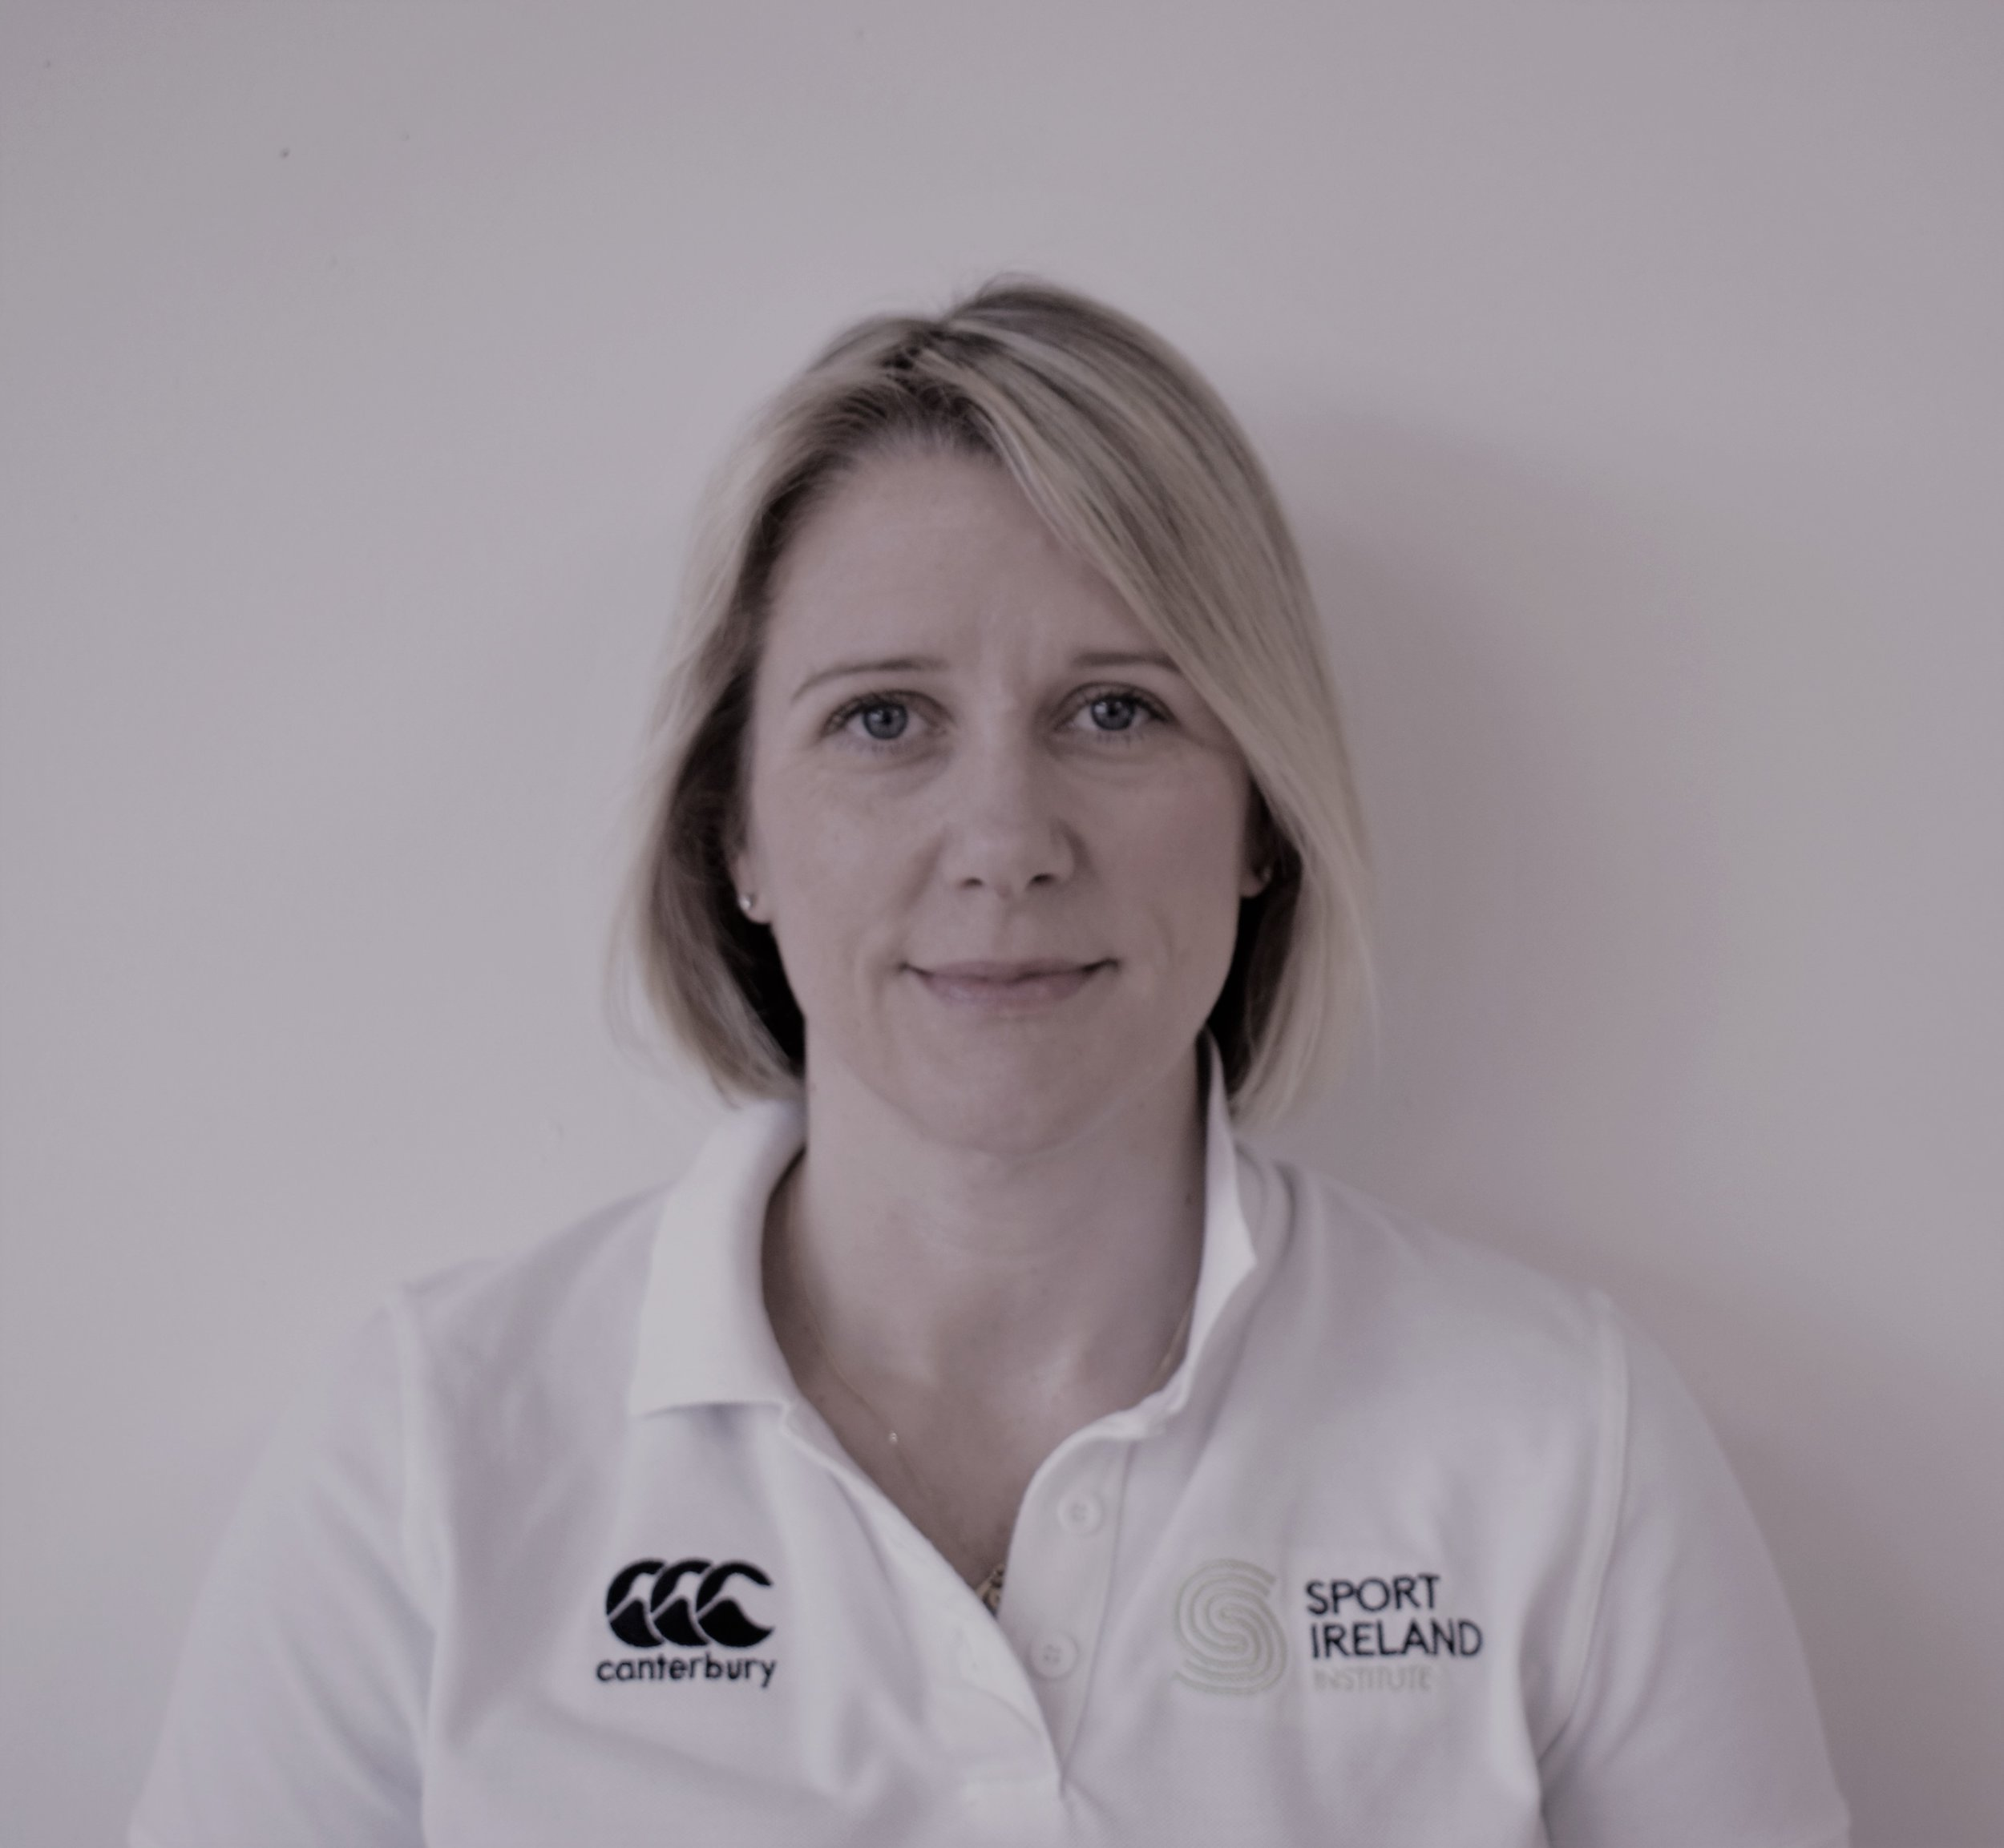 Sarah-Jane McDonnell, Head of Rehabilitation